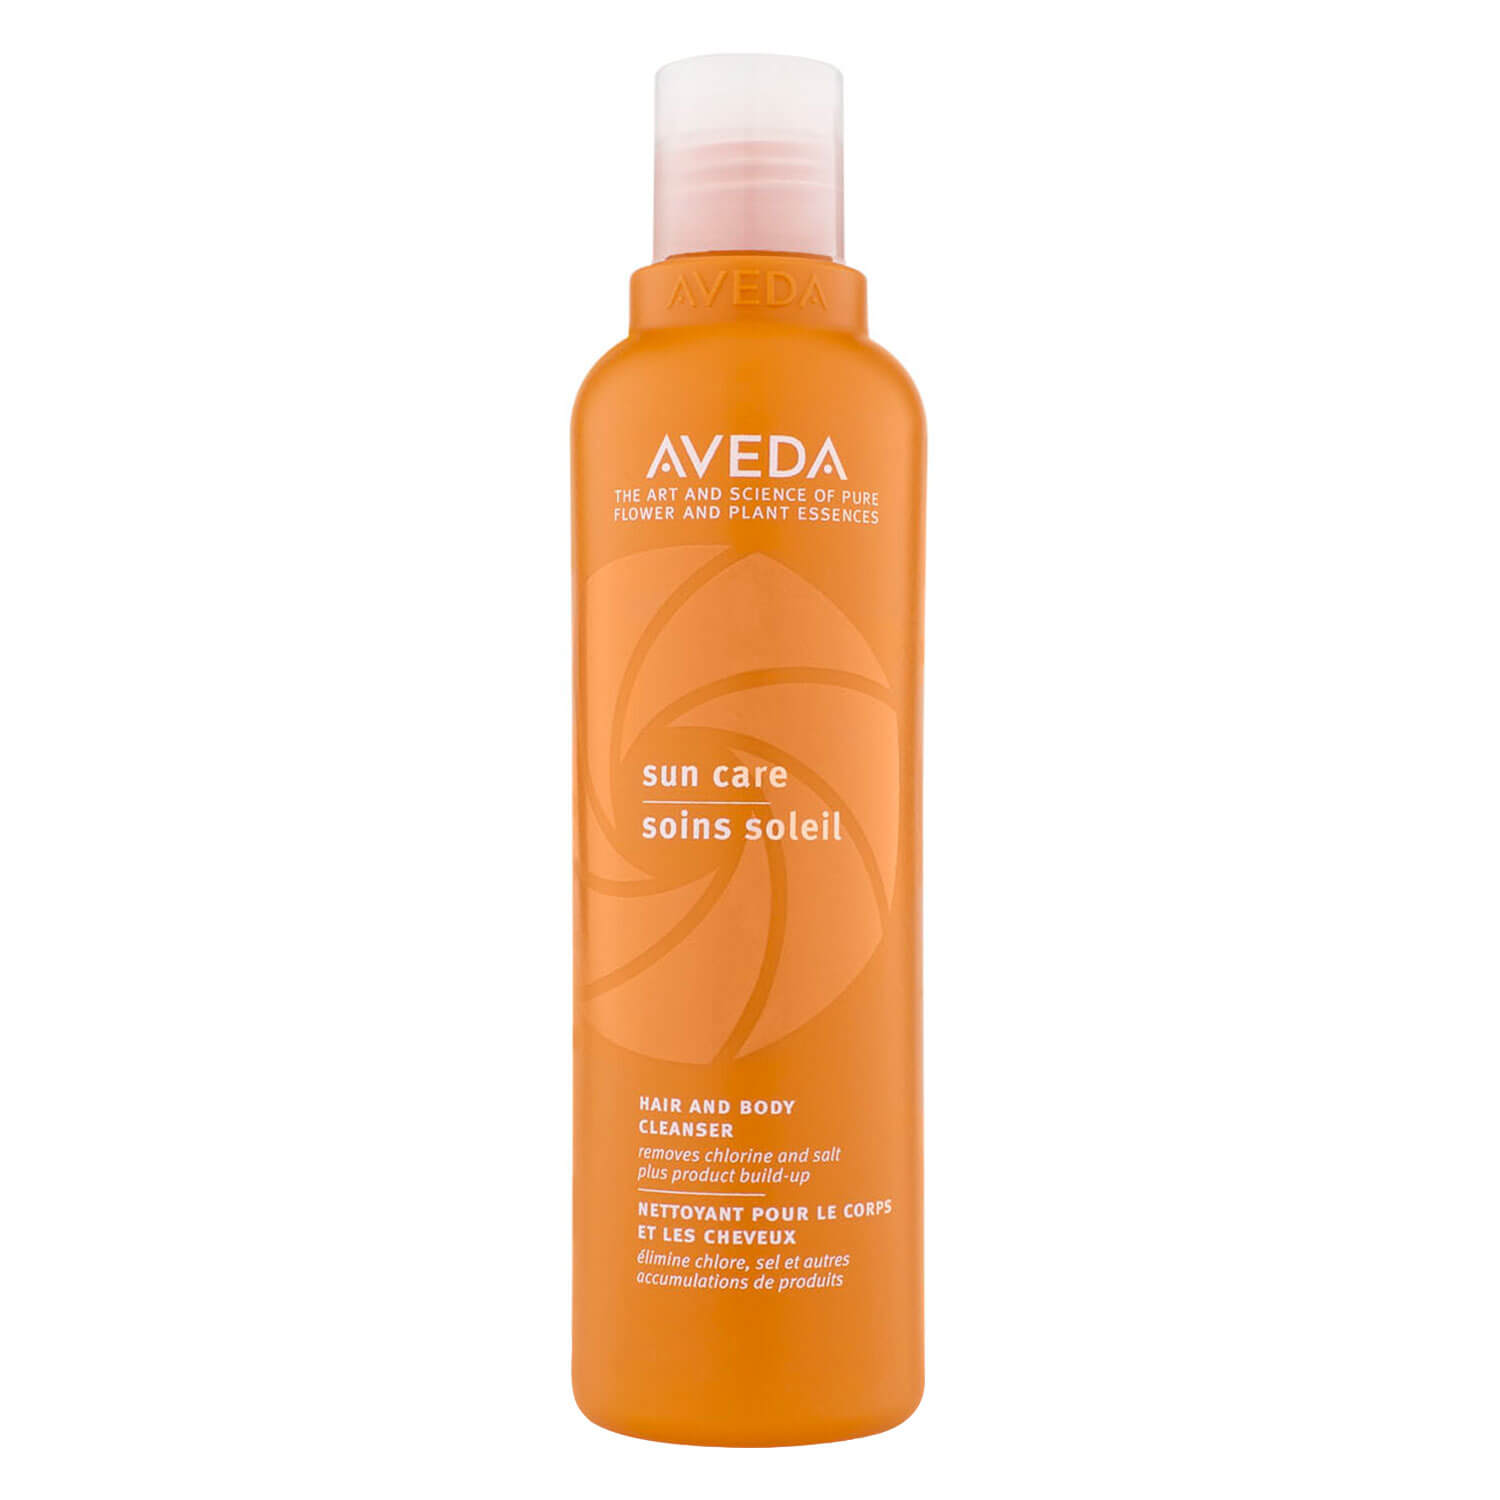 aveda sun care - hair and body cleanser